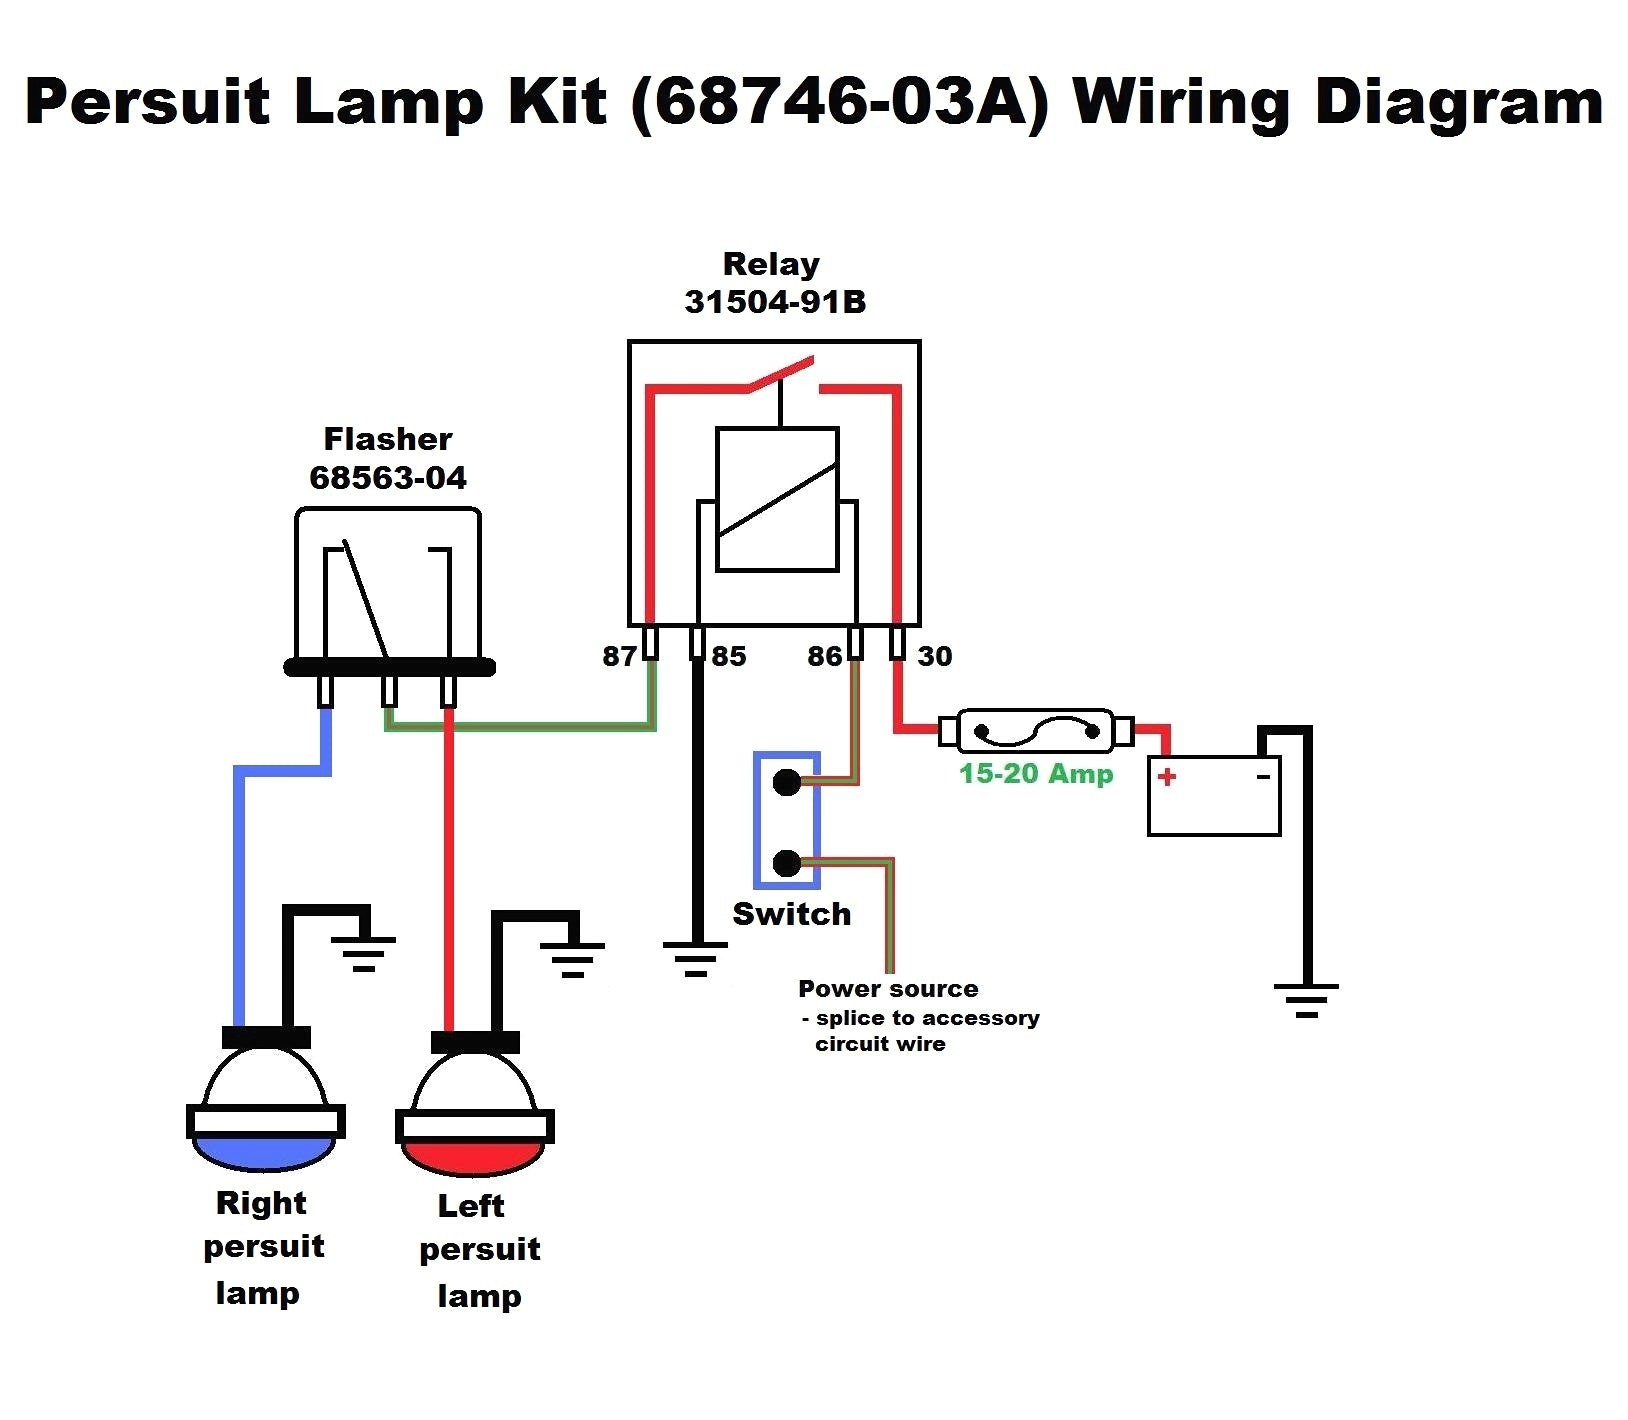 Turn Signal Flasher Wiring Diagram Signal Light Flasher Wiring Diagram Elegant Turn Signal Wiring Of Turn Signal Flasher Wiring Diagram Turn Signal Wiring Diagrams Wiring Diagrams Konsult